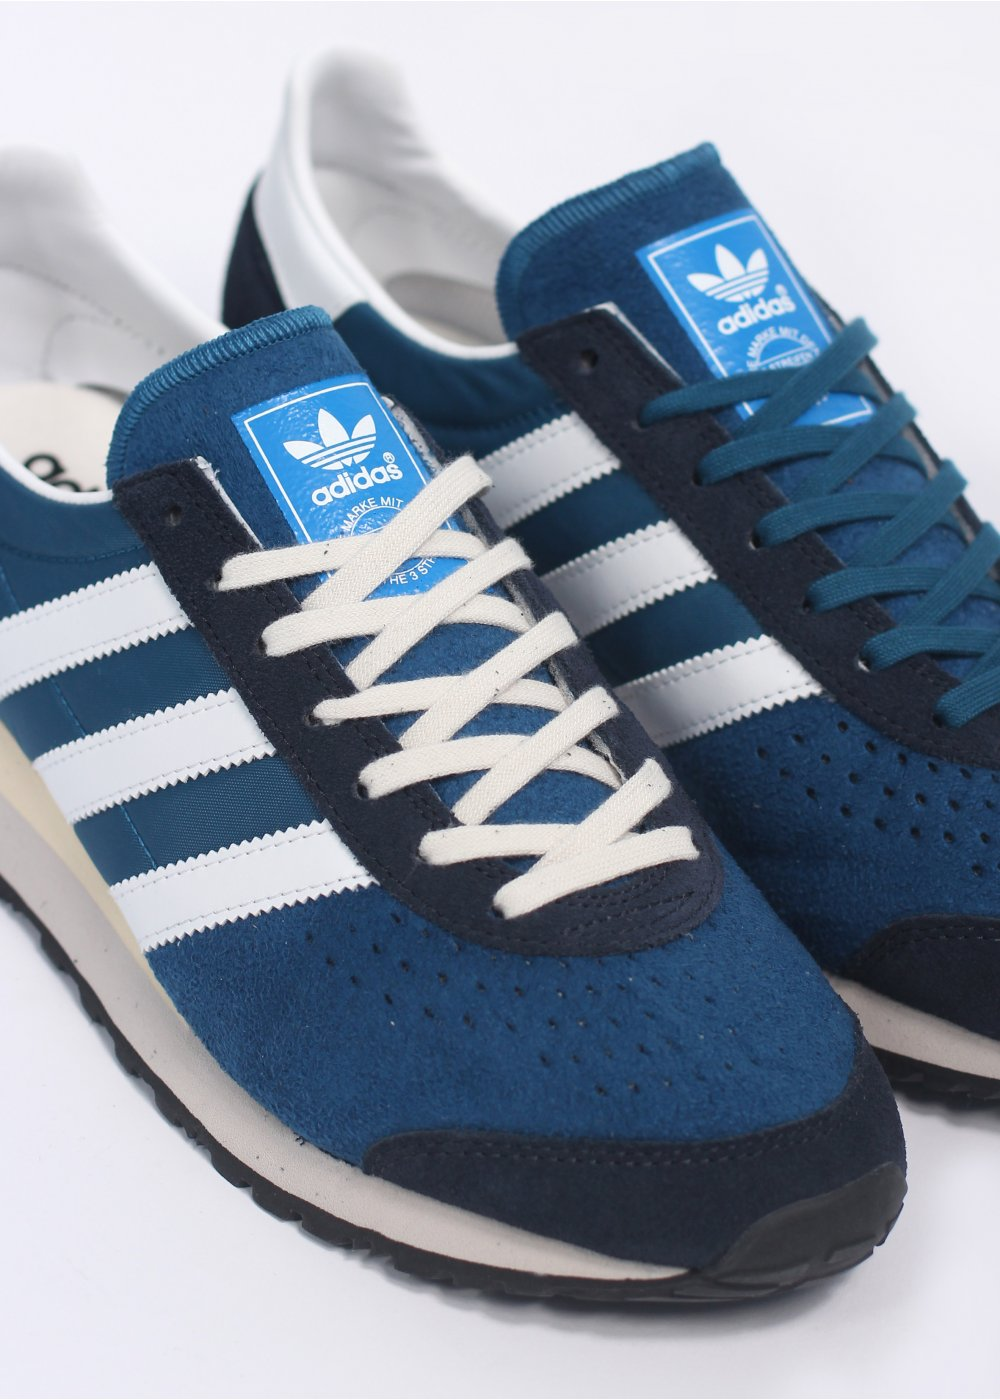 adidas marathon 85 tribe blue legend ink